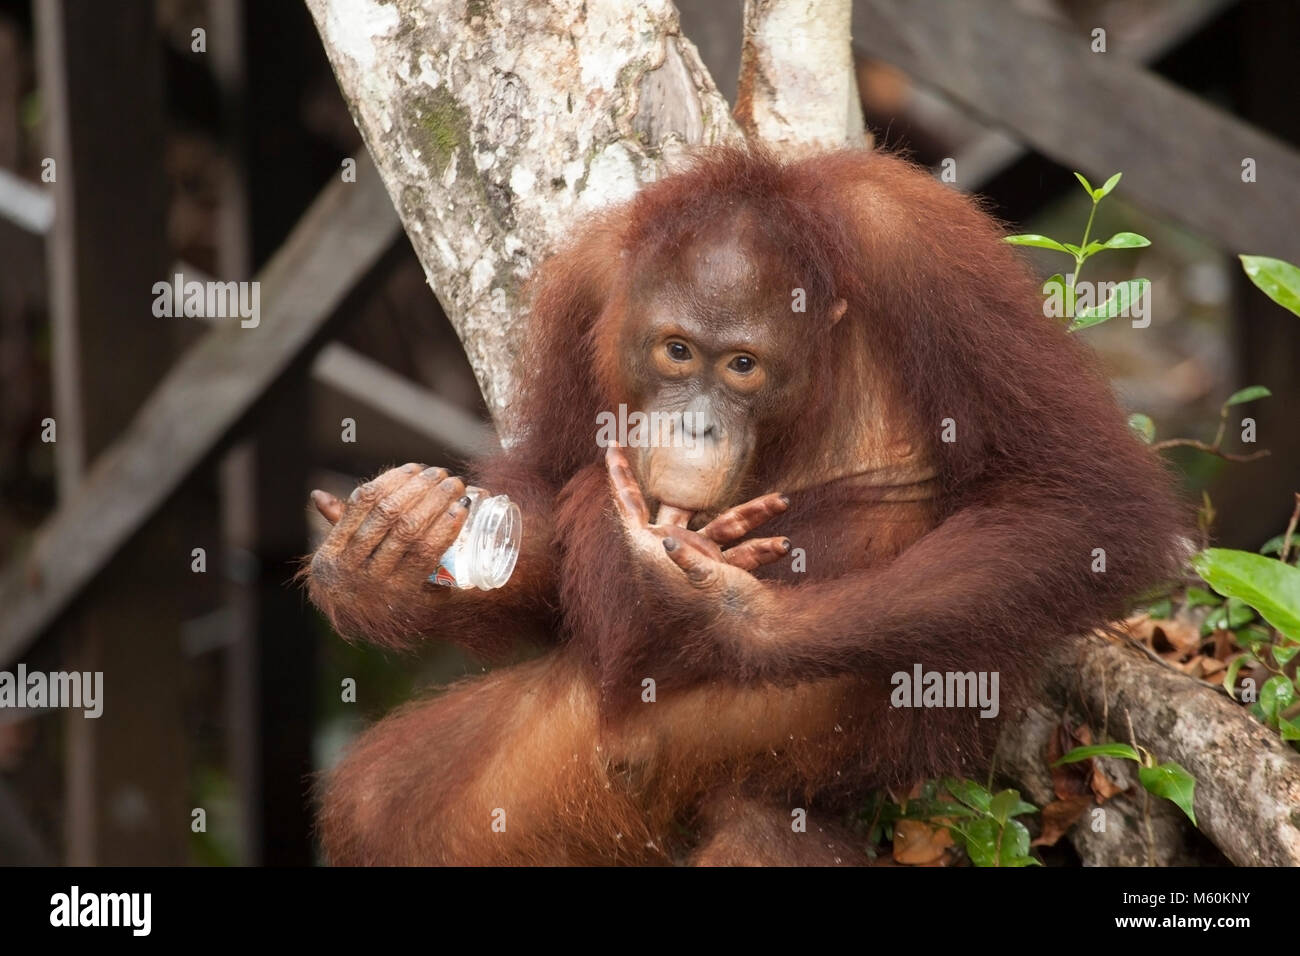 Wild Bornean Orangutan (Pongo pygmaeus) young male licking finger with food from discarded jar - Stock Image